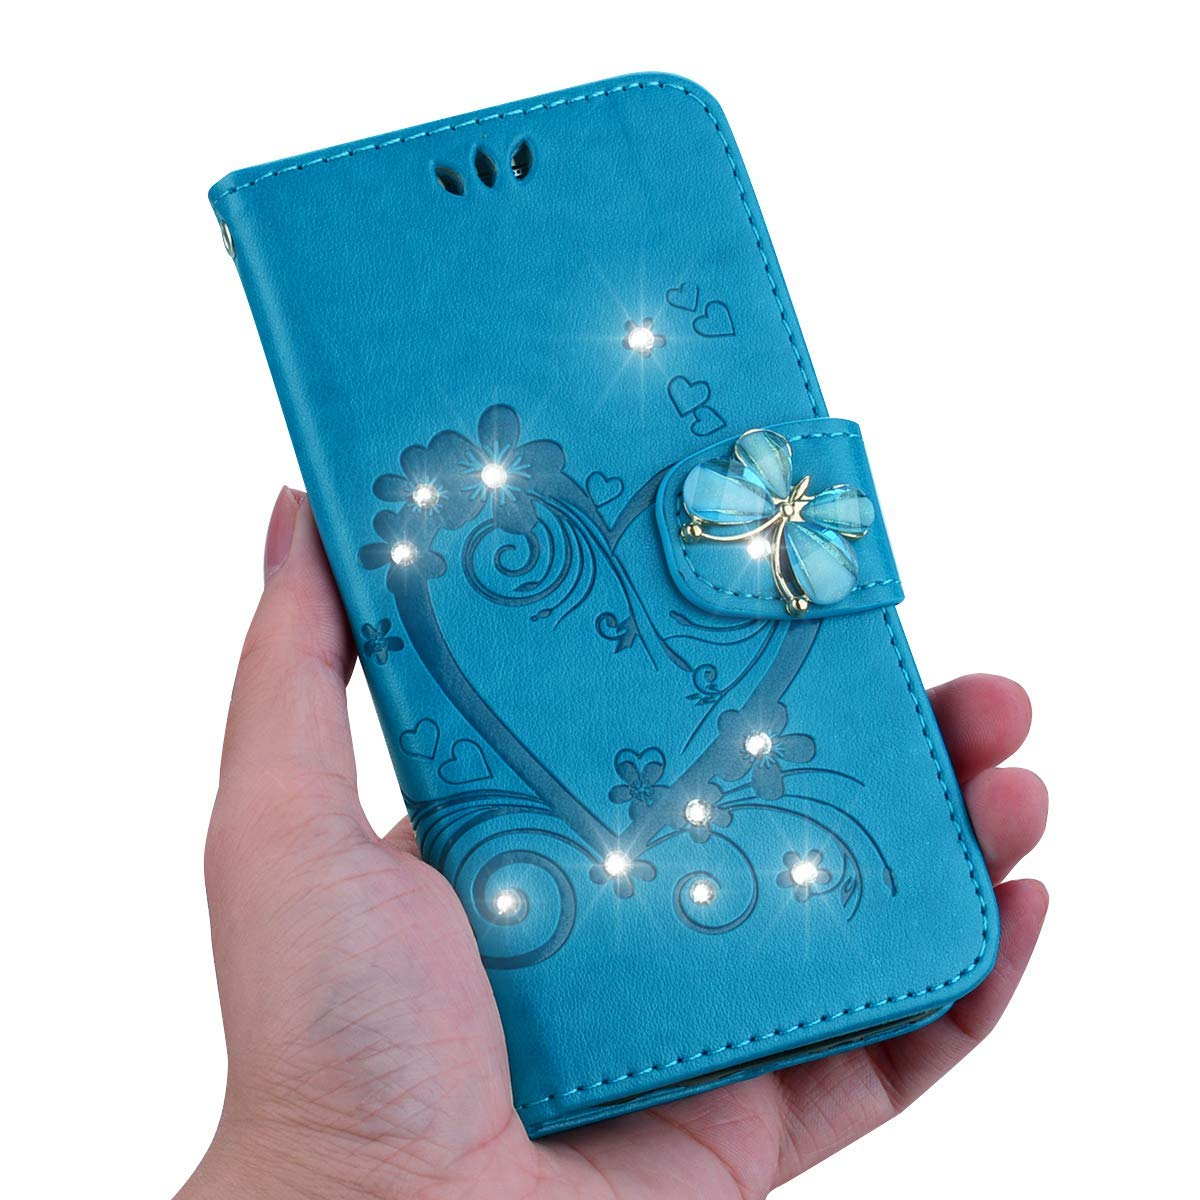 IKASEFU Galaxy S9 Plus Case,Shiny butterfly Rhinestone Emboss Love Floral Pu Leather Diamond Bling Wallet Strap Case with Card Holder Magnetic Flip Cover Compatible with Samsung Galaxy S9 Plus,gold